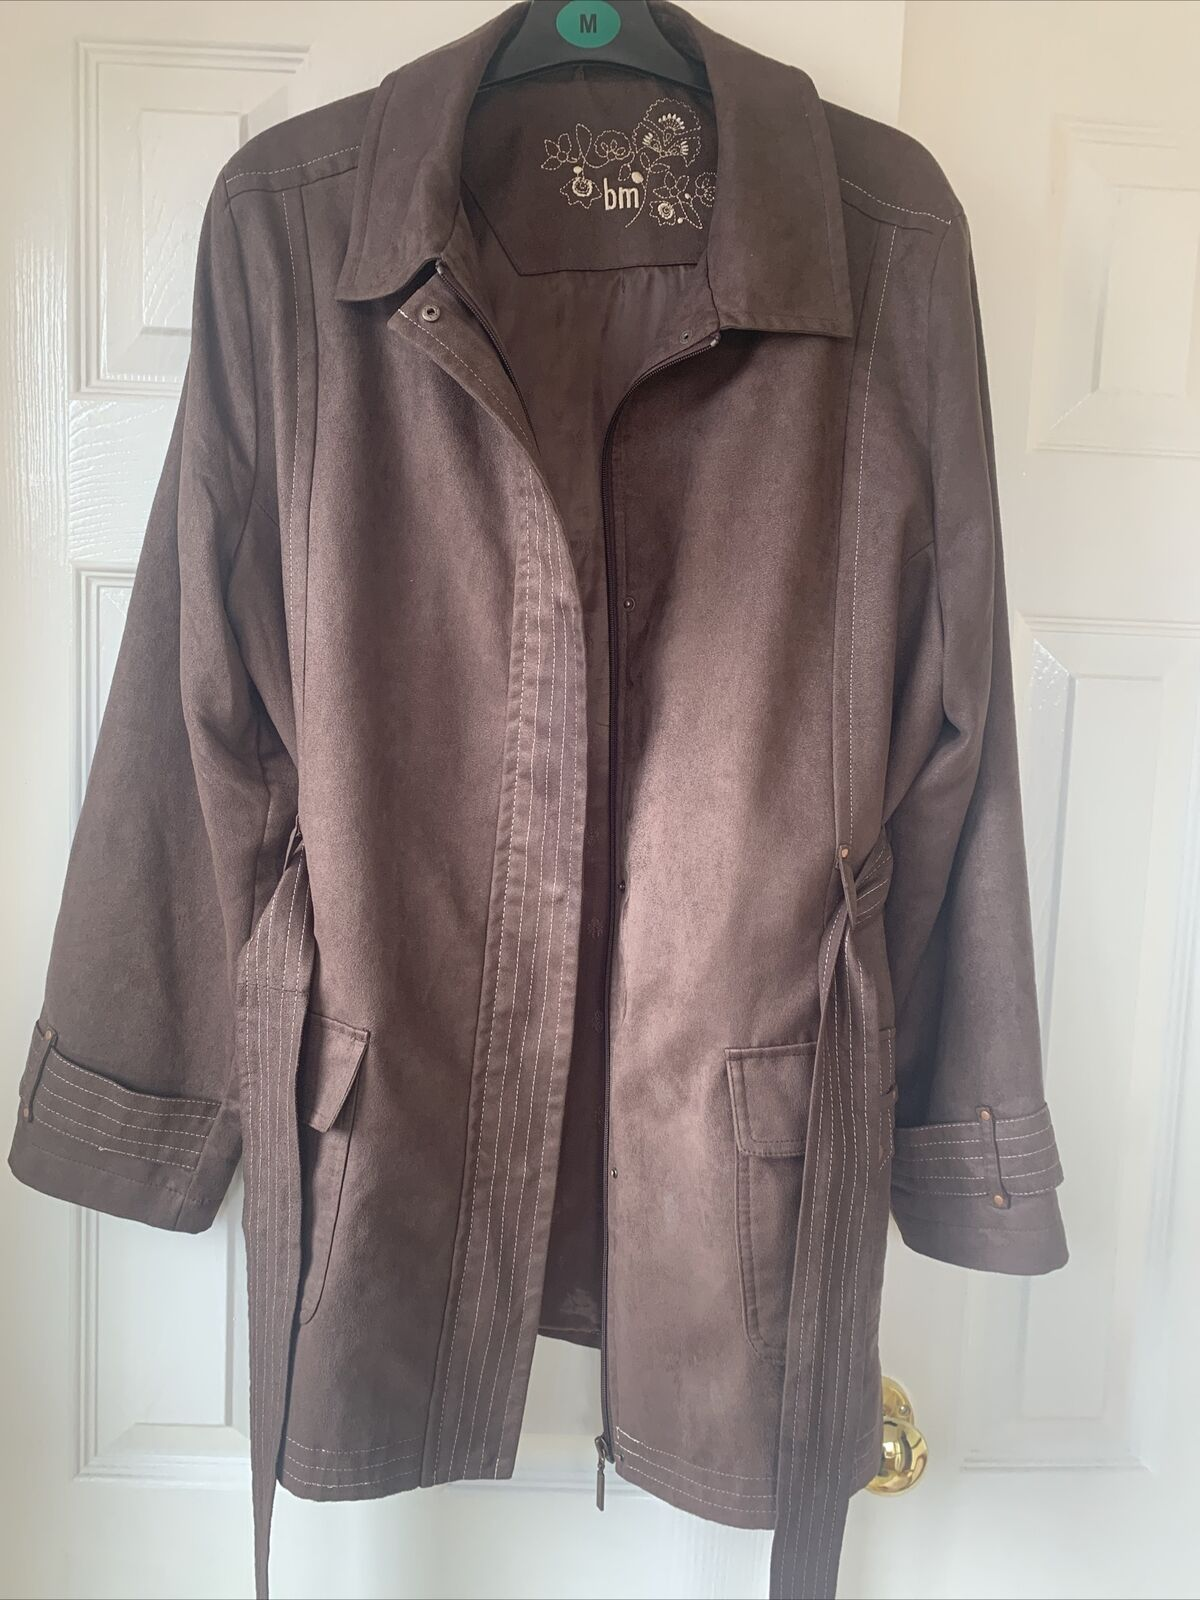 Bon Marche 18 Ladies Jacket, Brown Suede Like Material, Light,